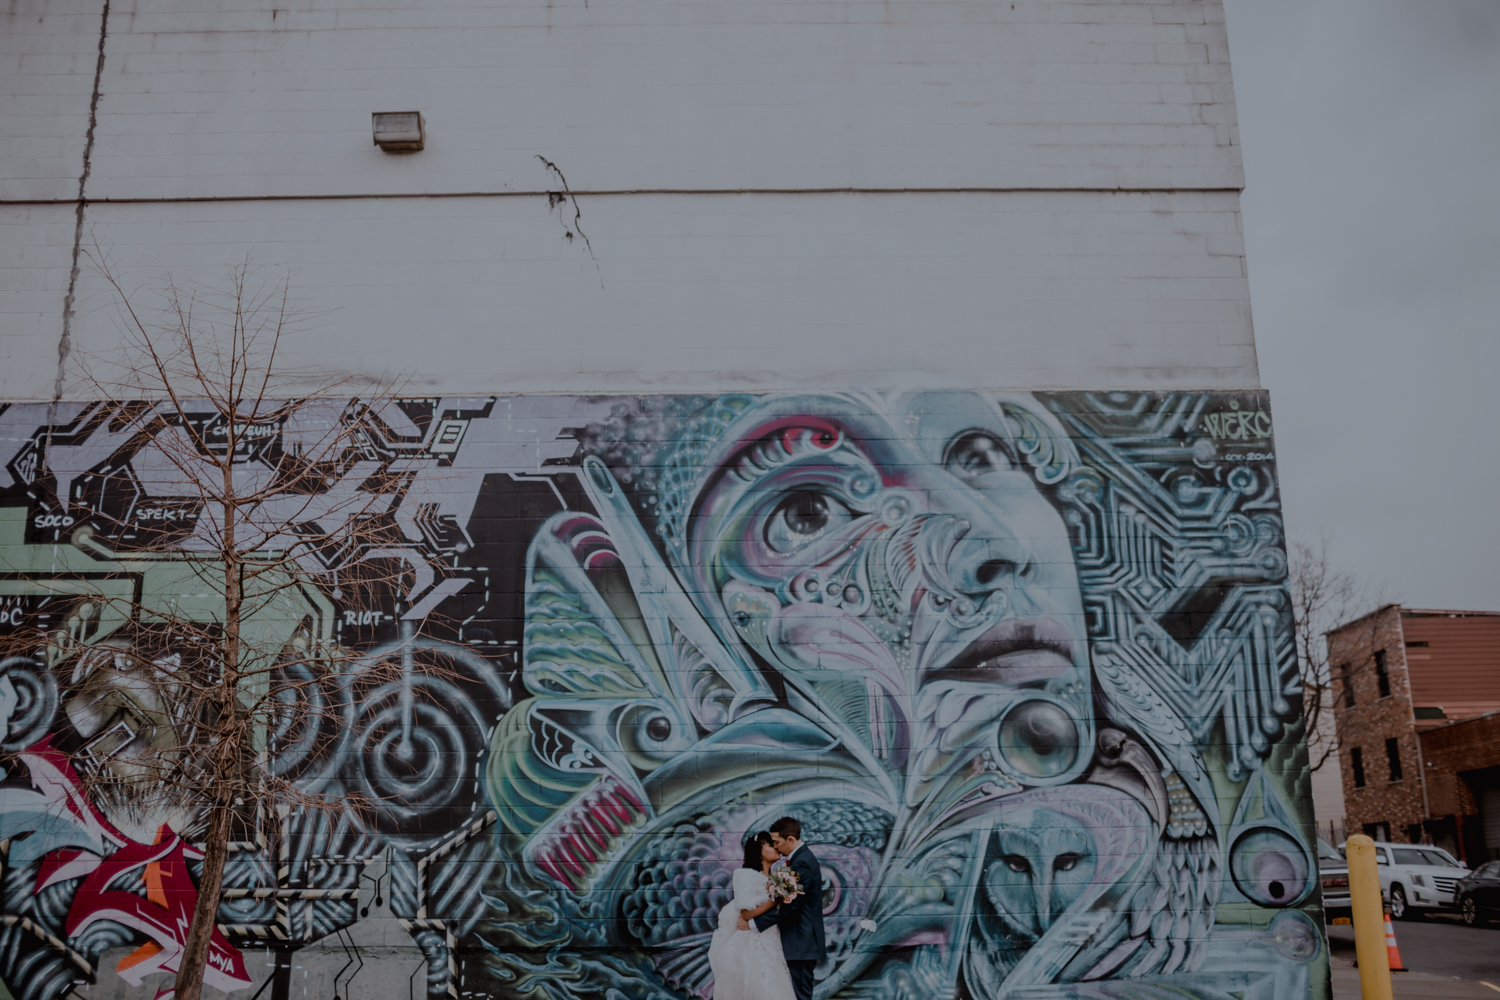 Green_building_wedding_photographer_brooklyn_newyork_ny-55.jpg